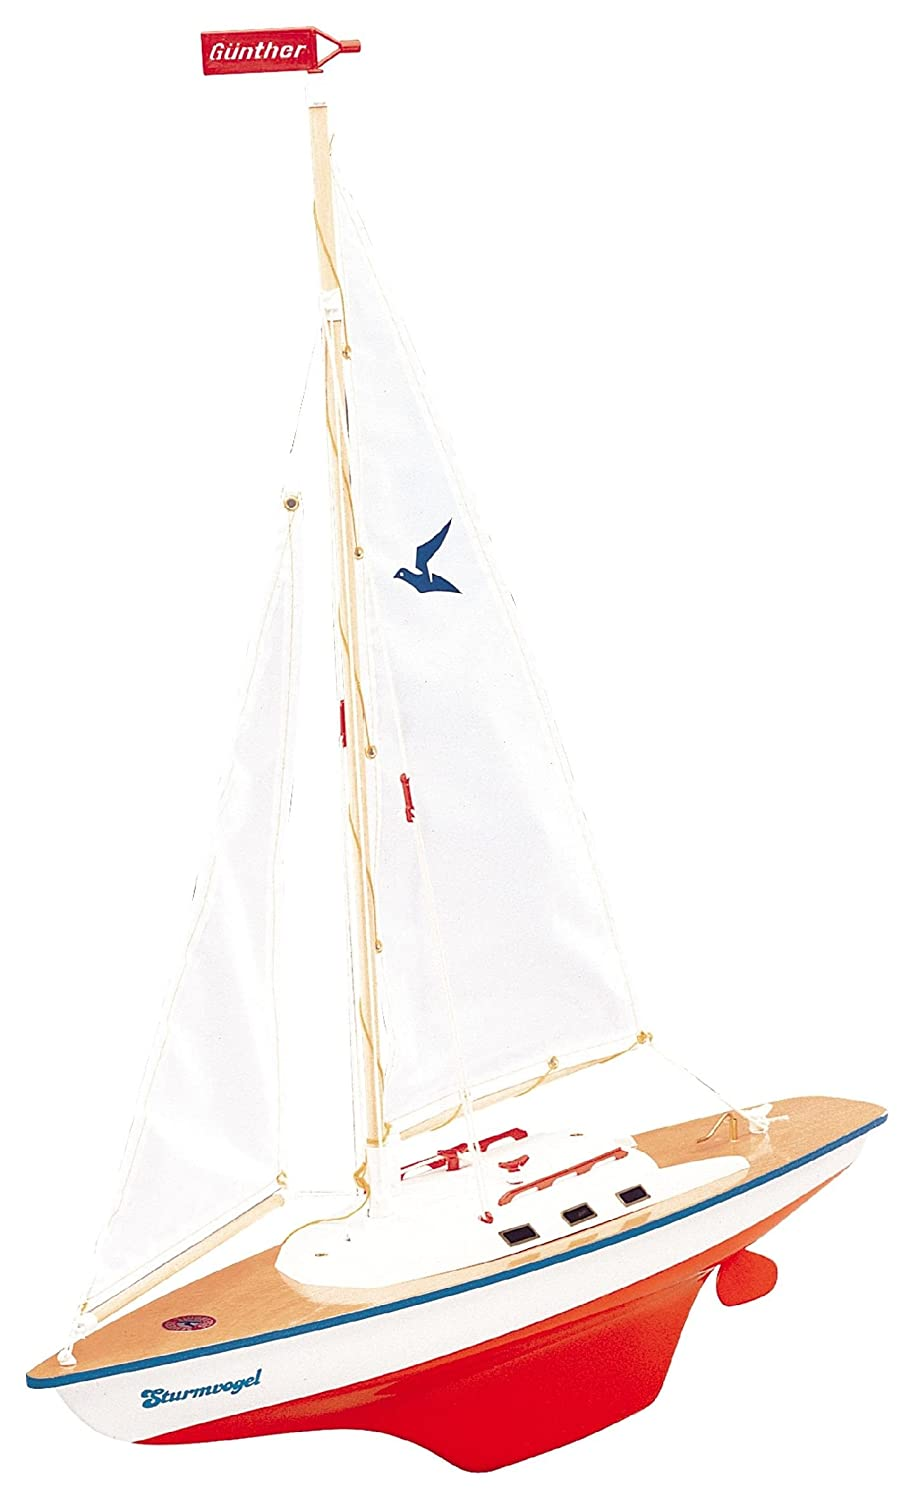 Guenther 1810 55 cm Sturmvogel Sailing Boat Model: Amazon.co.uk: Toys &  Games